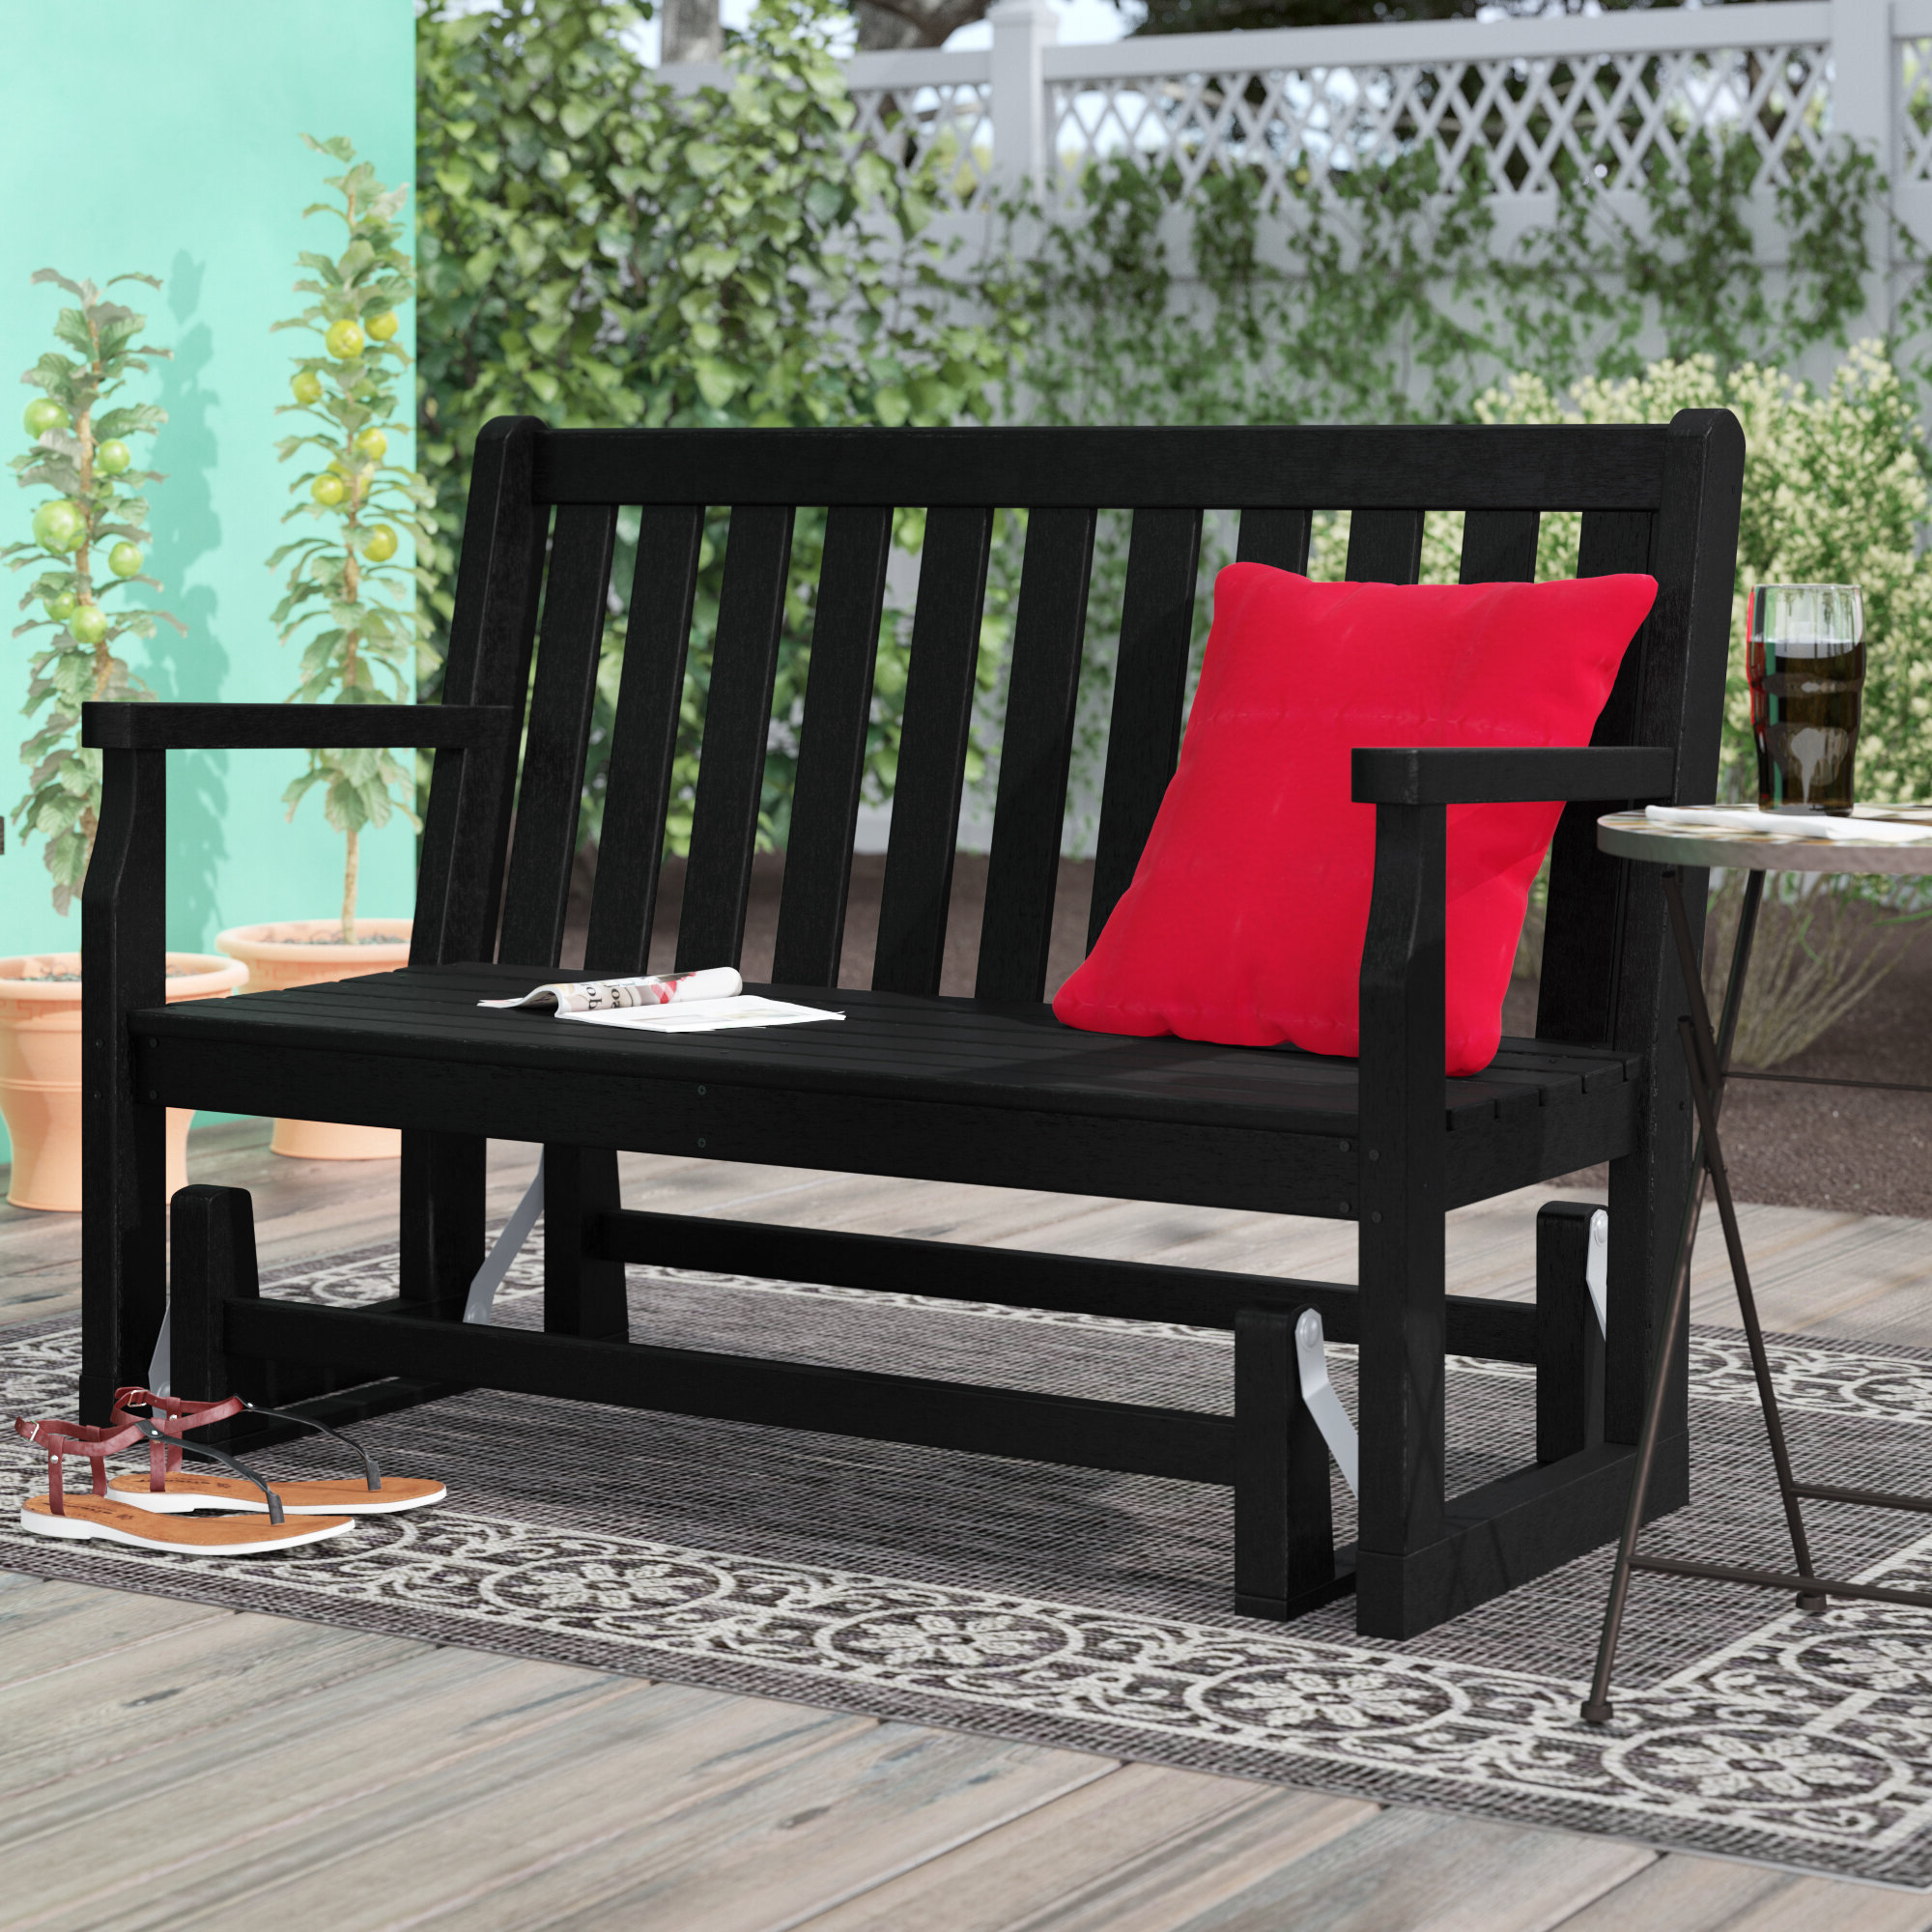 Most Popular Glider Outdoor Benches You'll Love In (View 5 of 30)